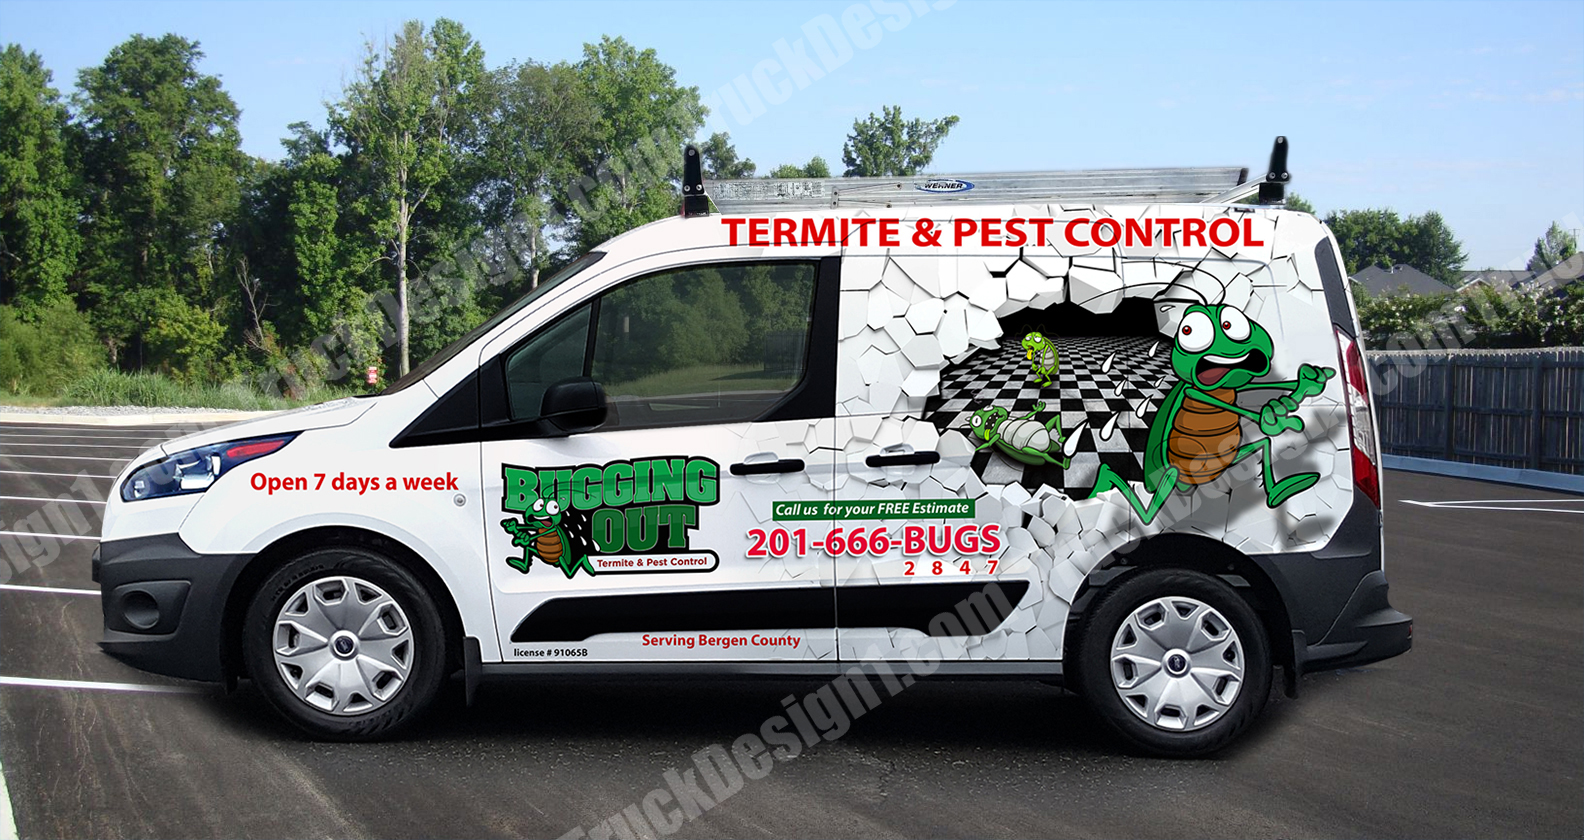 024ca1cda5 Customer  Bugging Out Termite and Pest Control